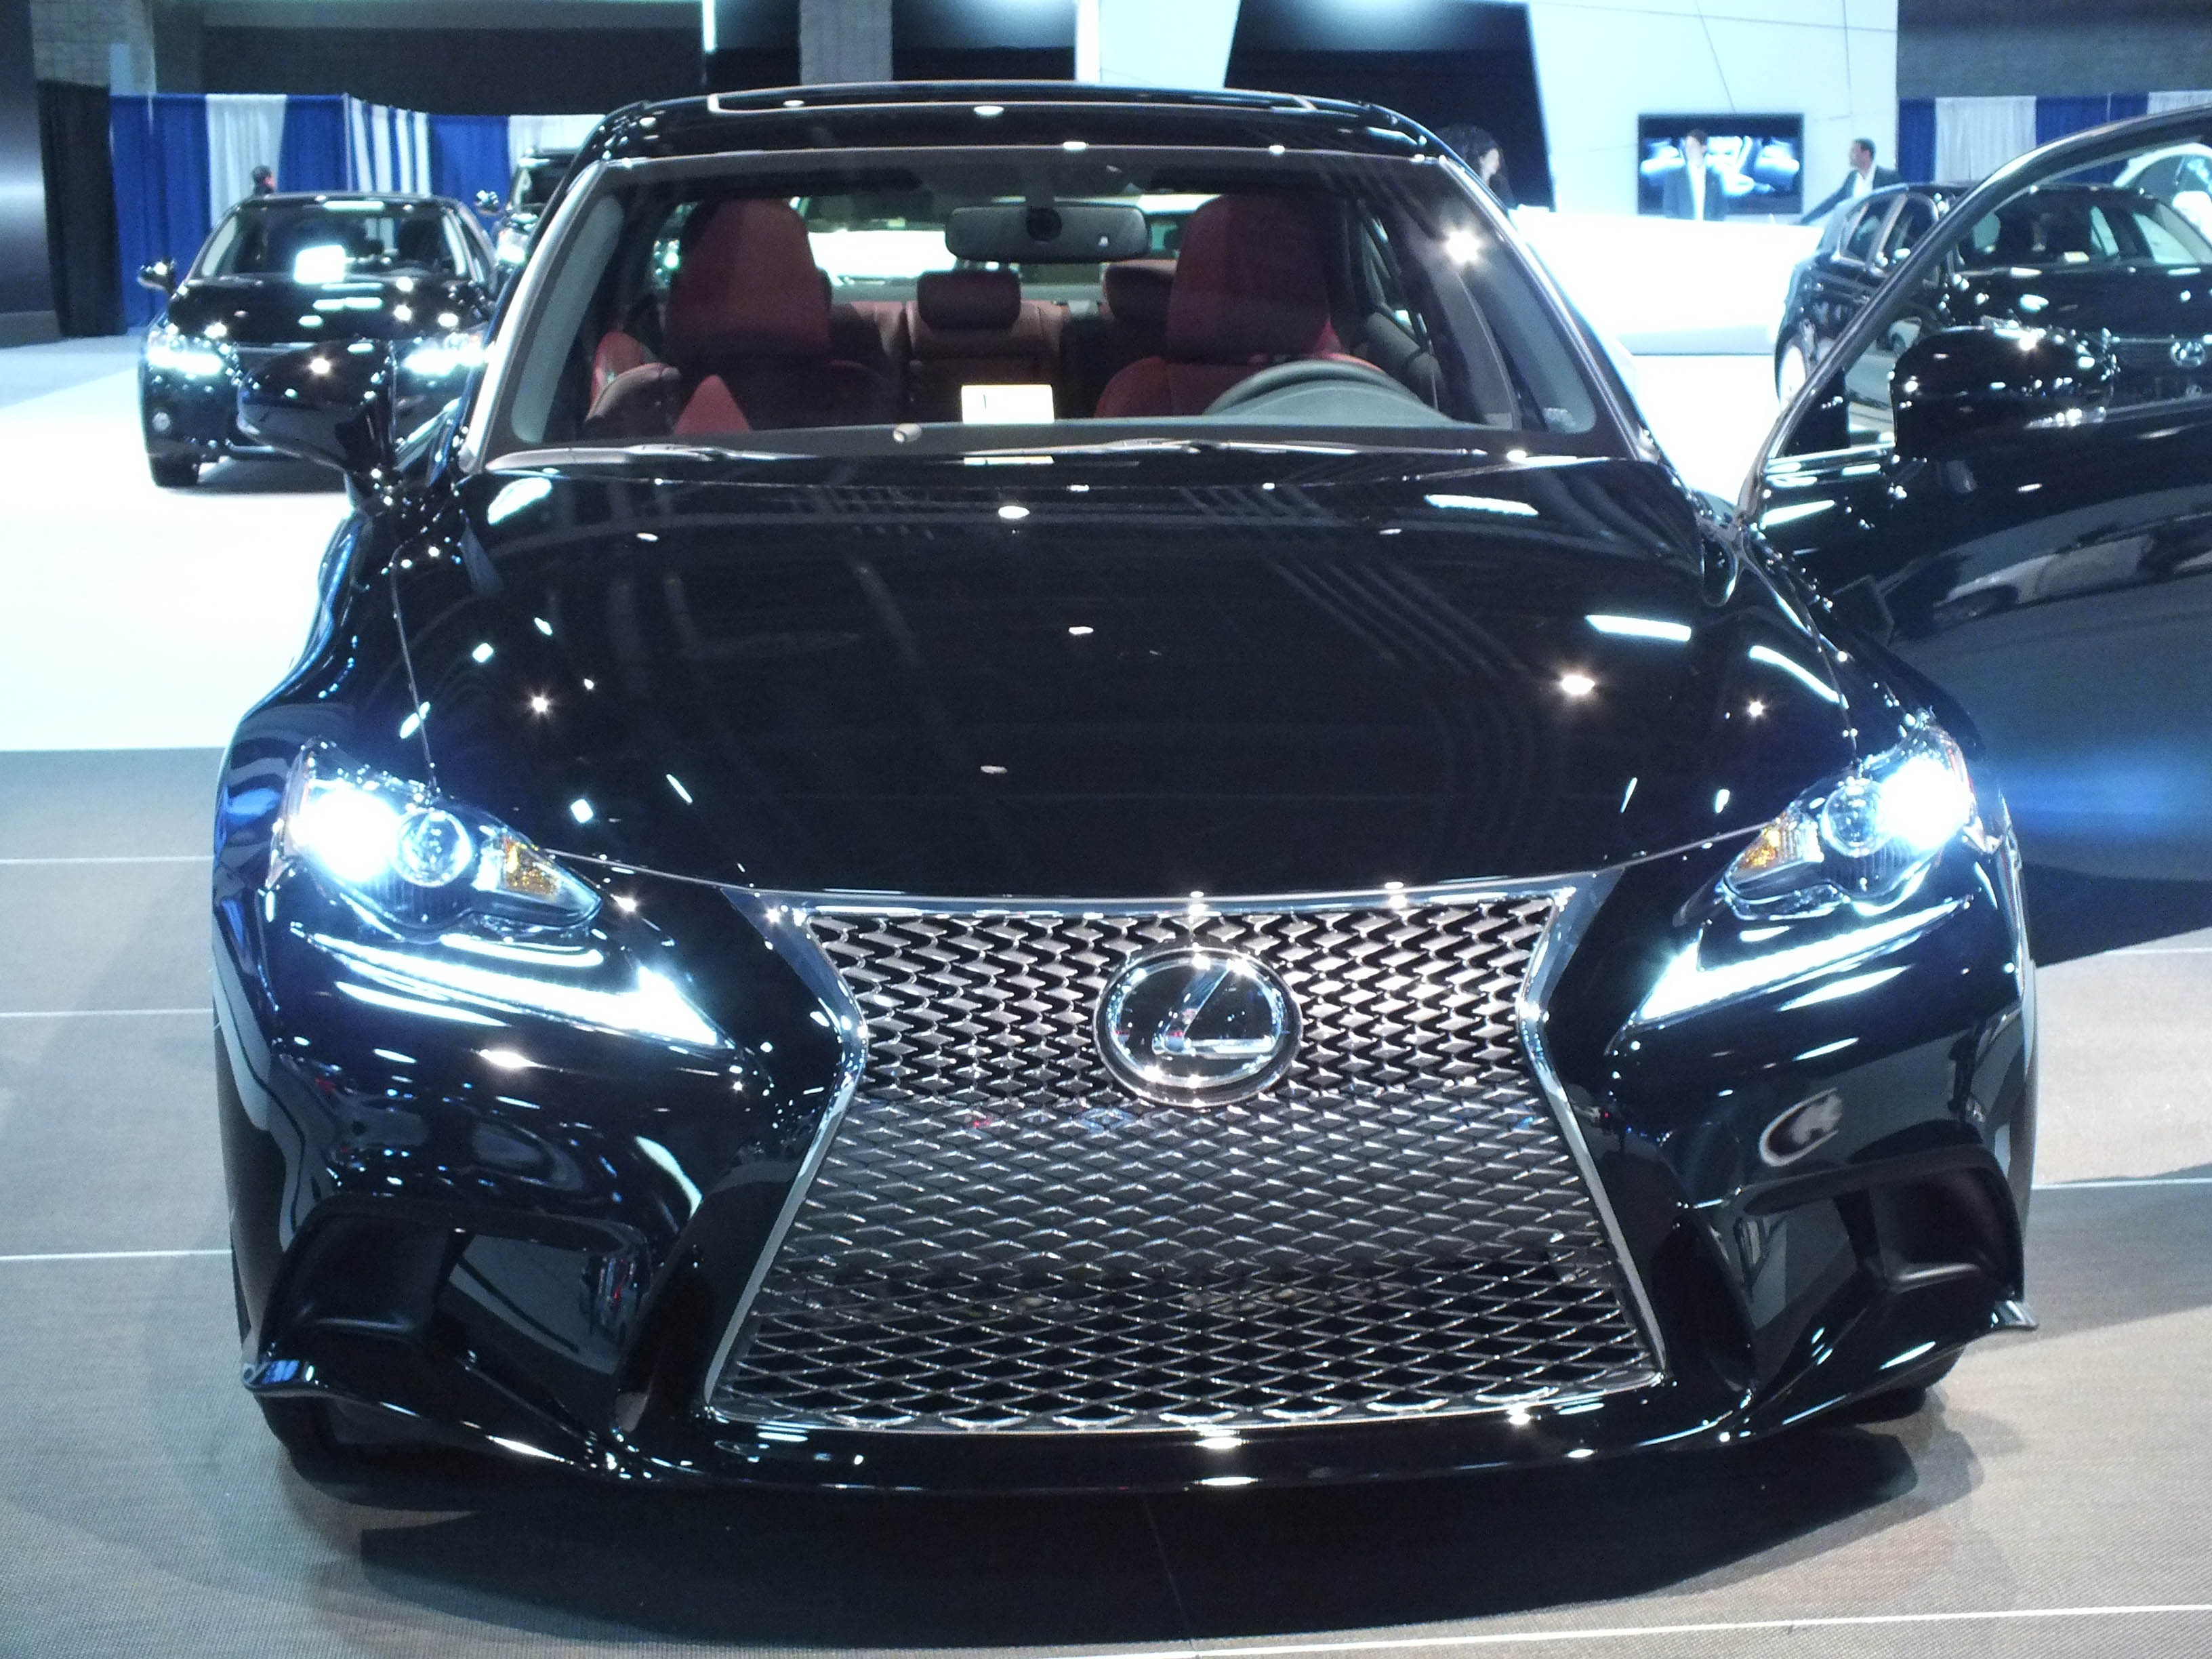 Awesome File:2014 Lexus IS F Sport With LED Lights